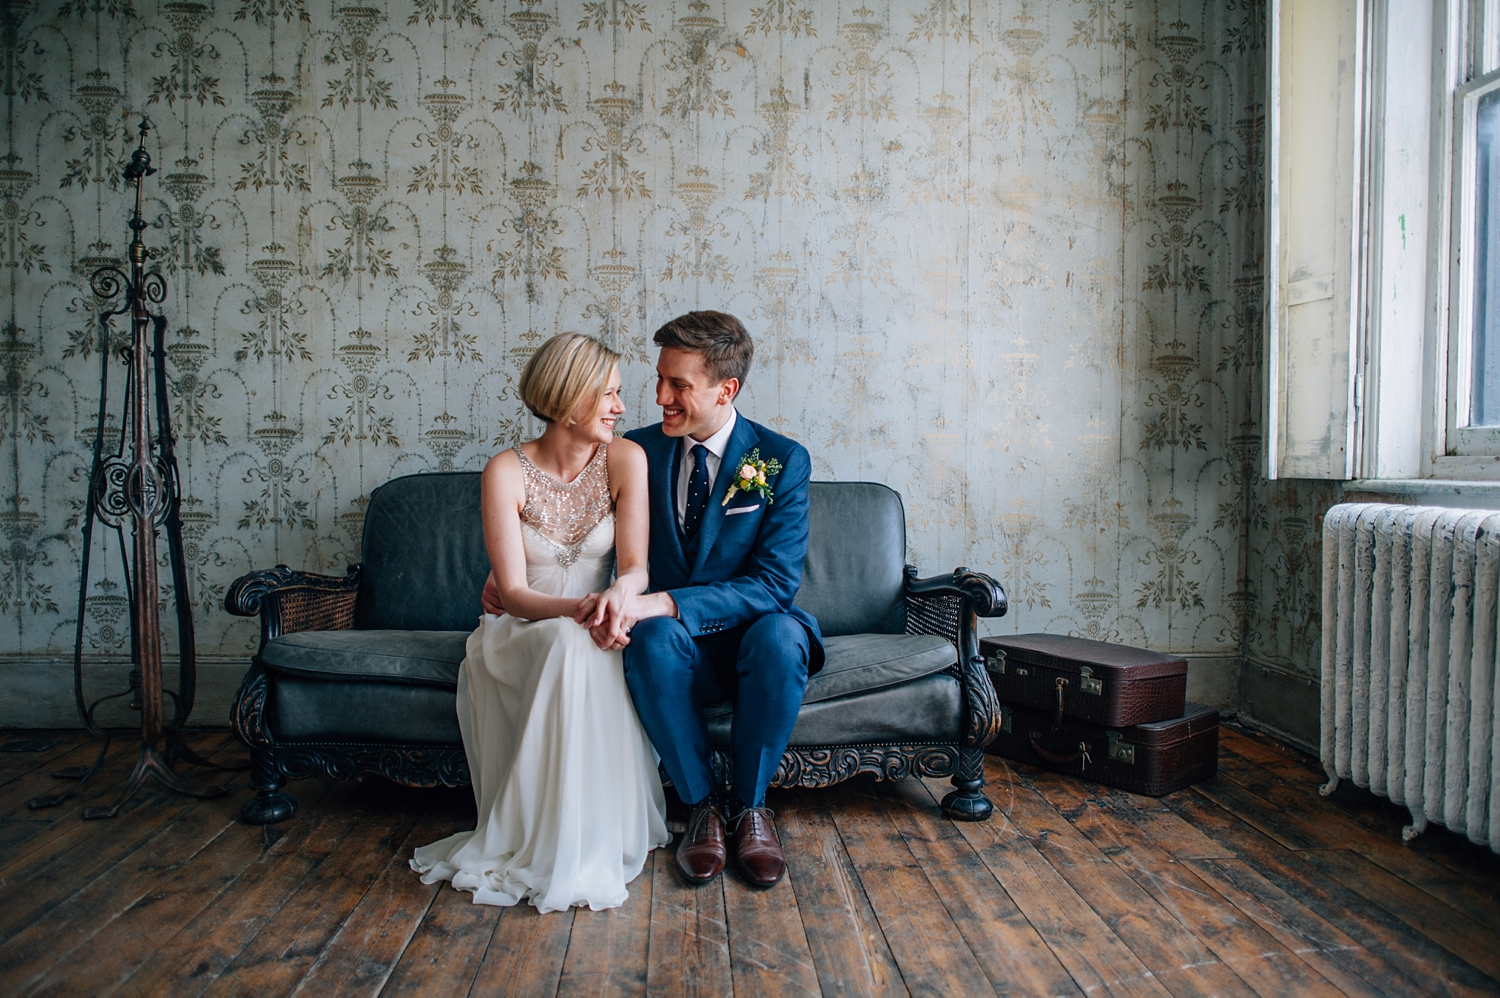 0110-lisa-devine-alternative-wedding-photography-london-hackney-dalston-london-photography-townhall-hotel.JPG